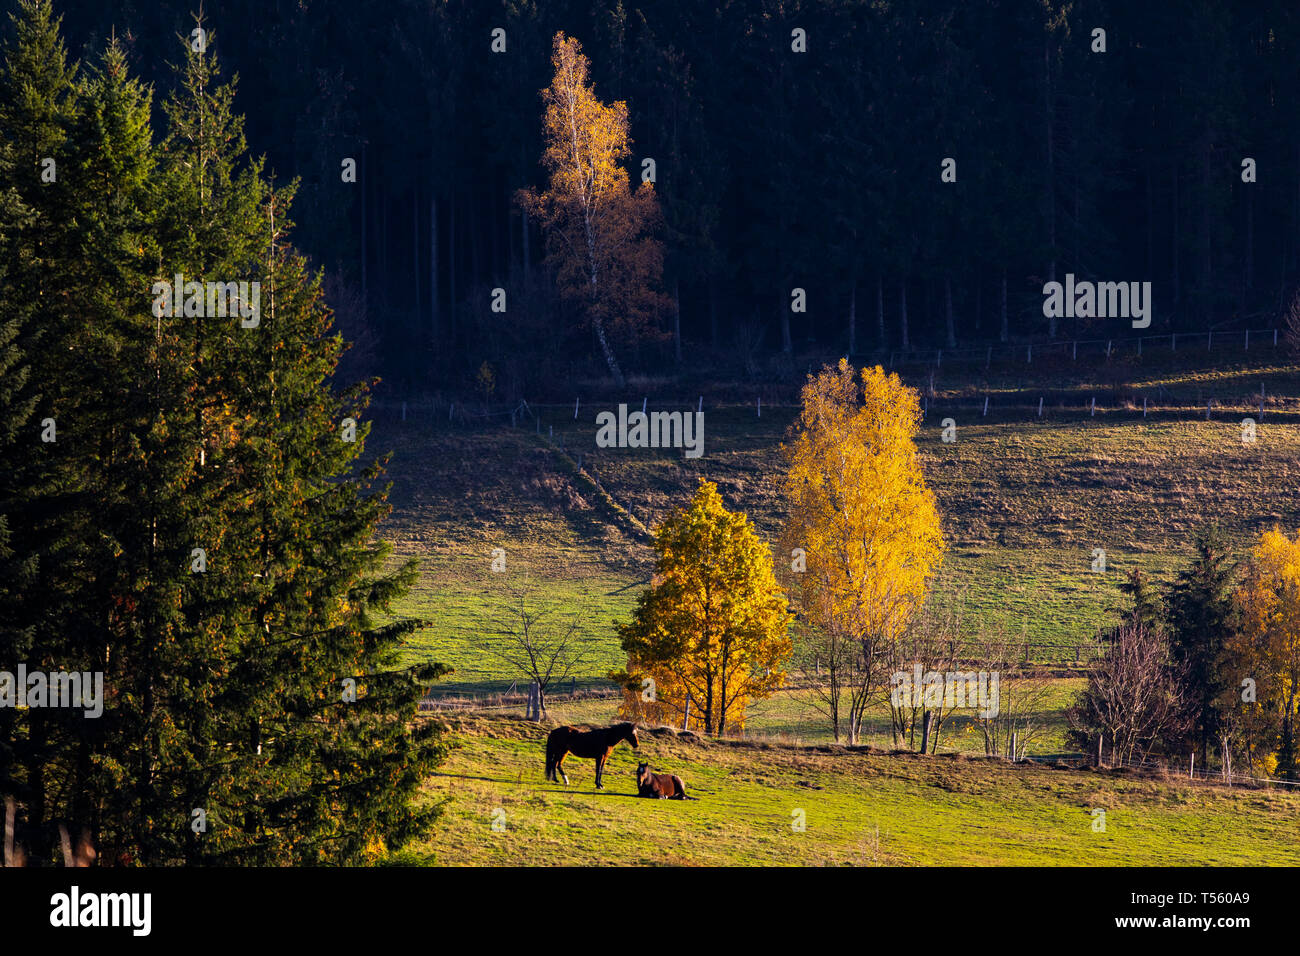 Autumn forest, horses in a pasture, near Bad Berleburg, Siegen district, Wittgenstein, in Sauerland, NRW, Germany, - Stock Image